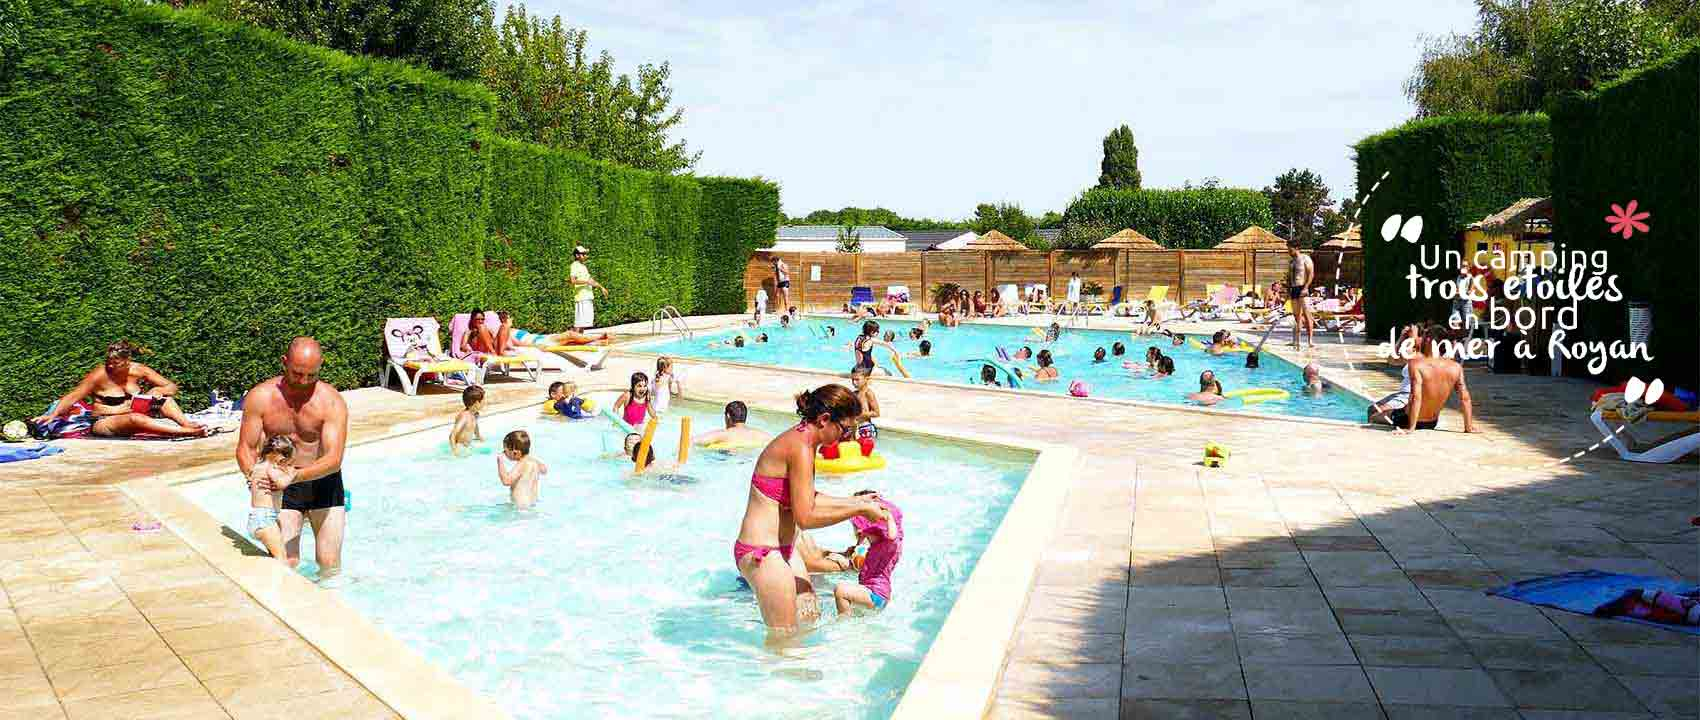 camping piscine royan camping proche plage